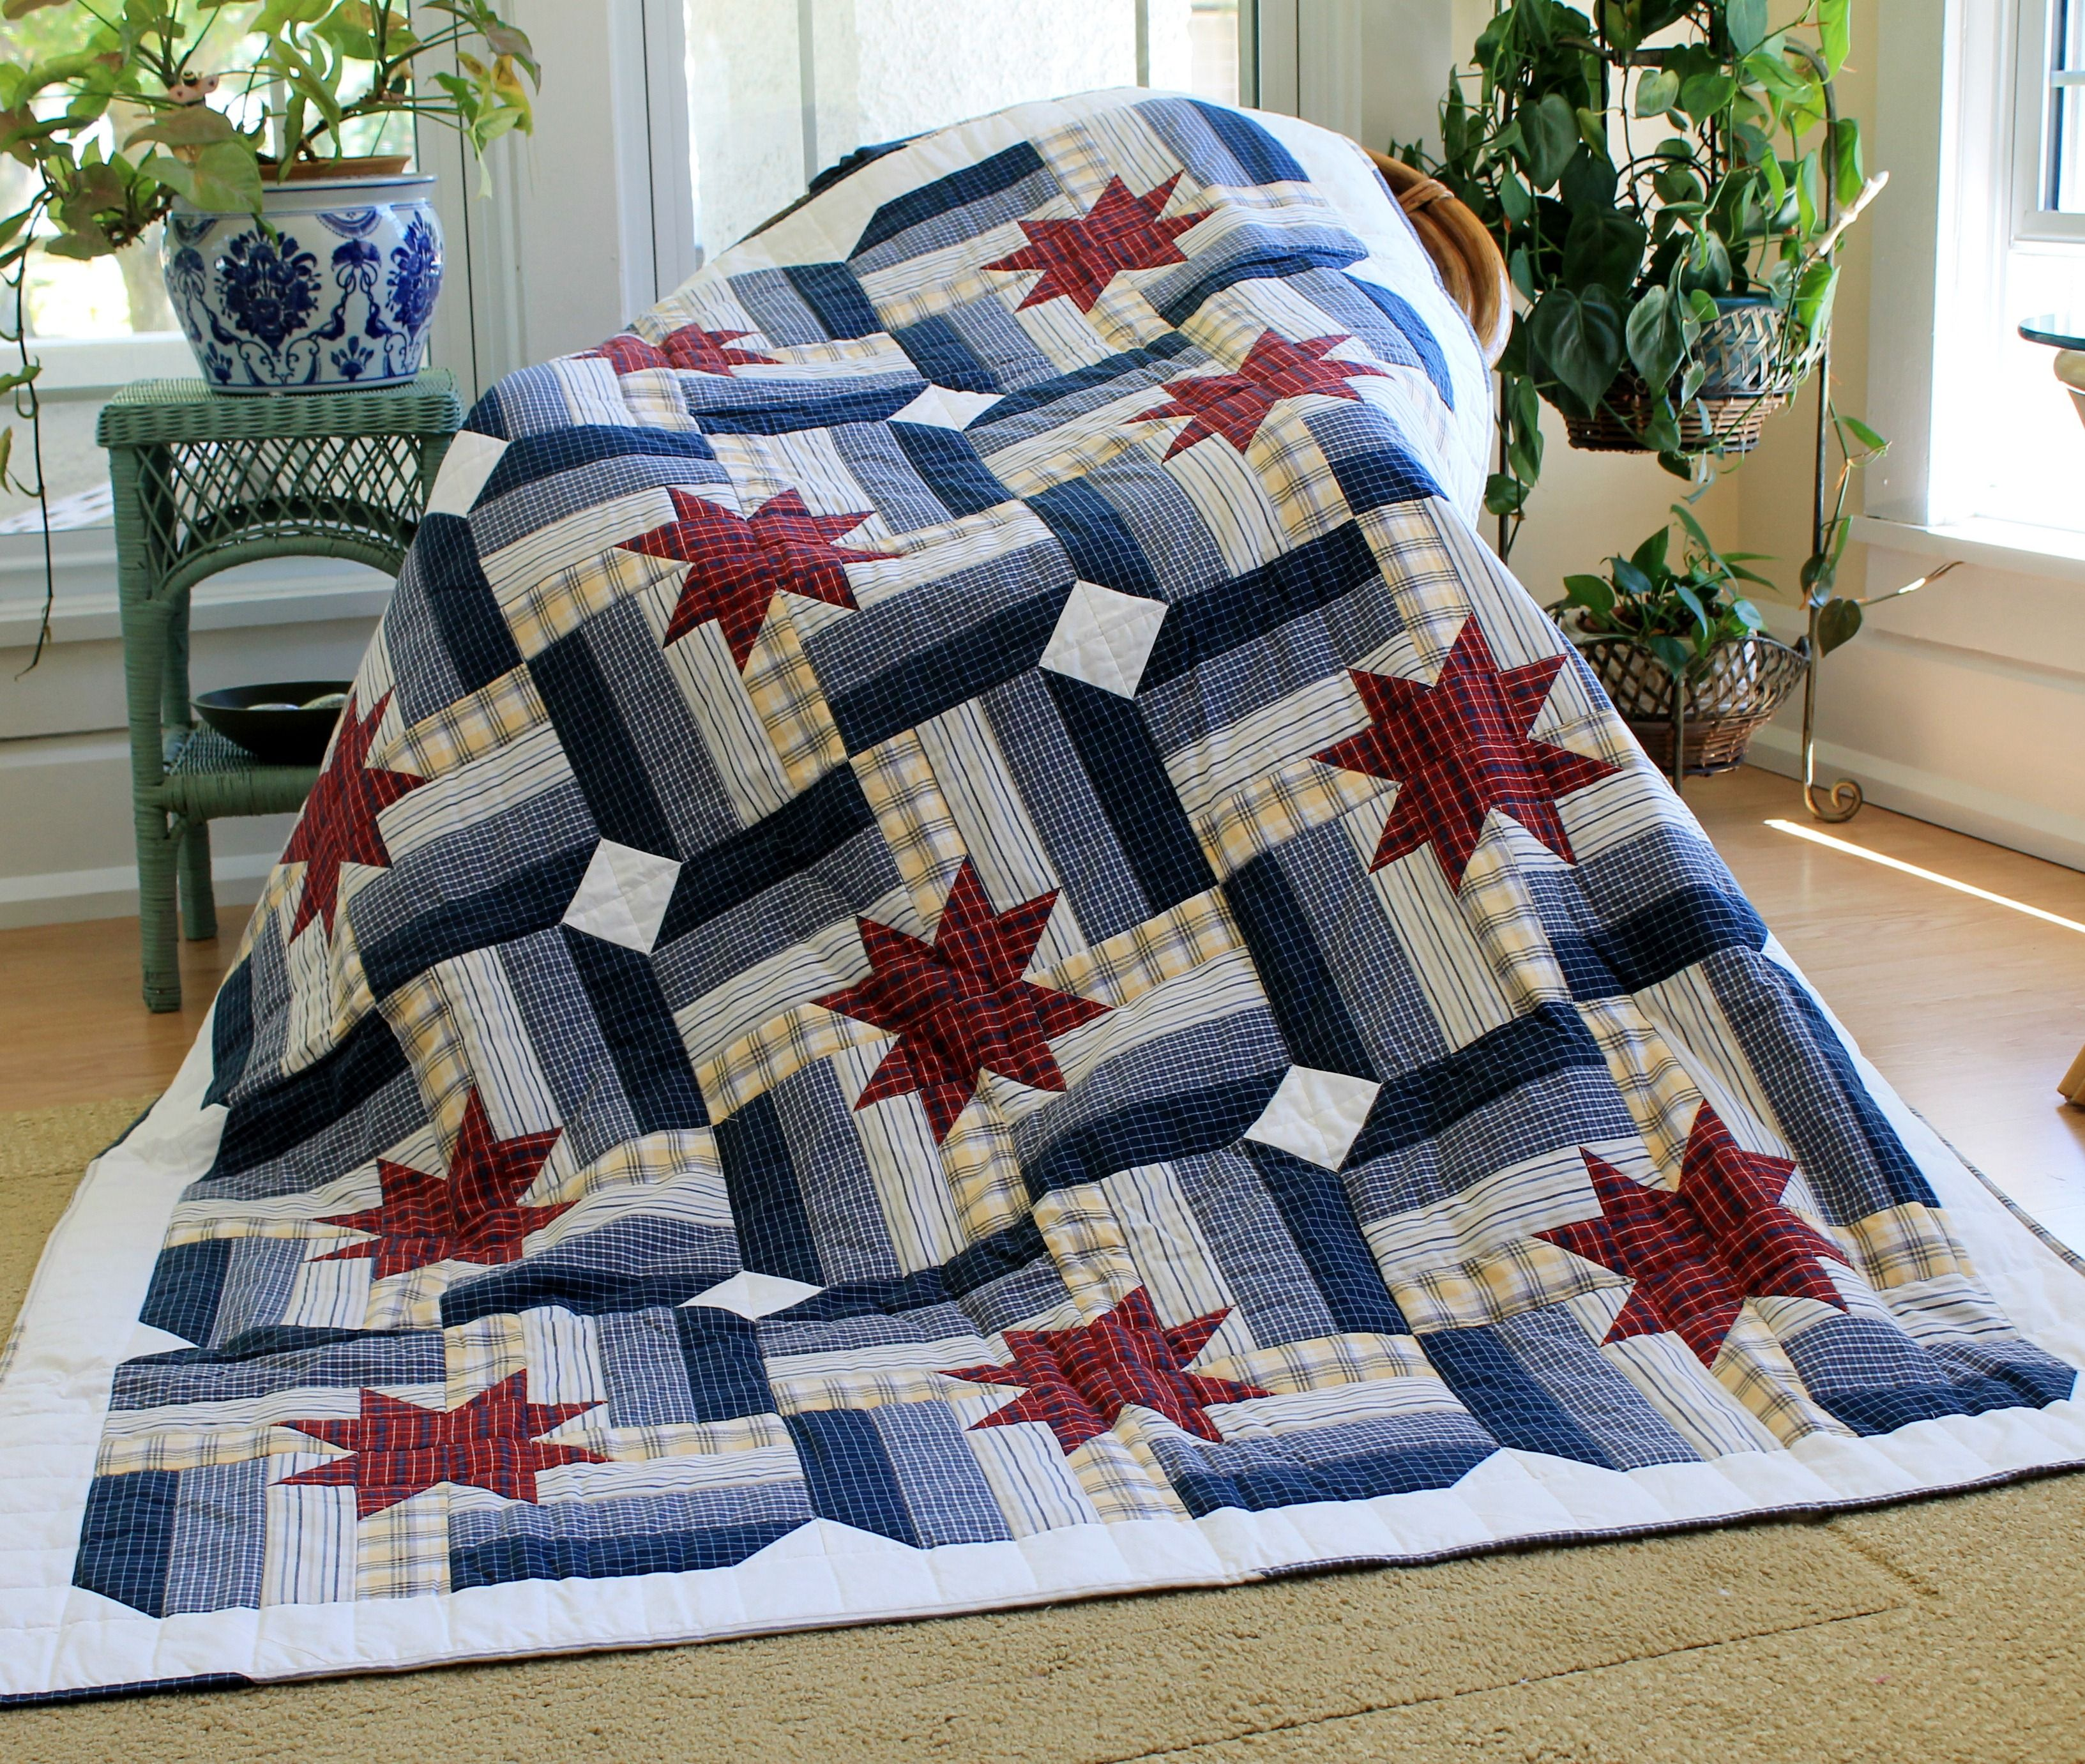 Quilt Made Entirely With Recycled Men S Shirts By Rhonda